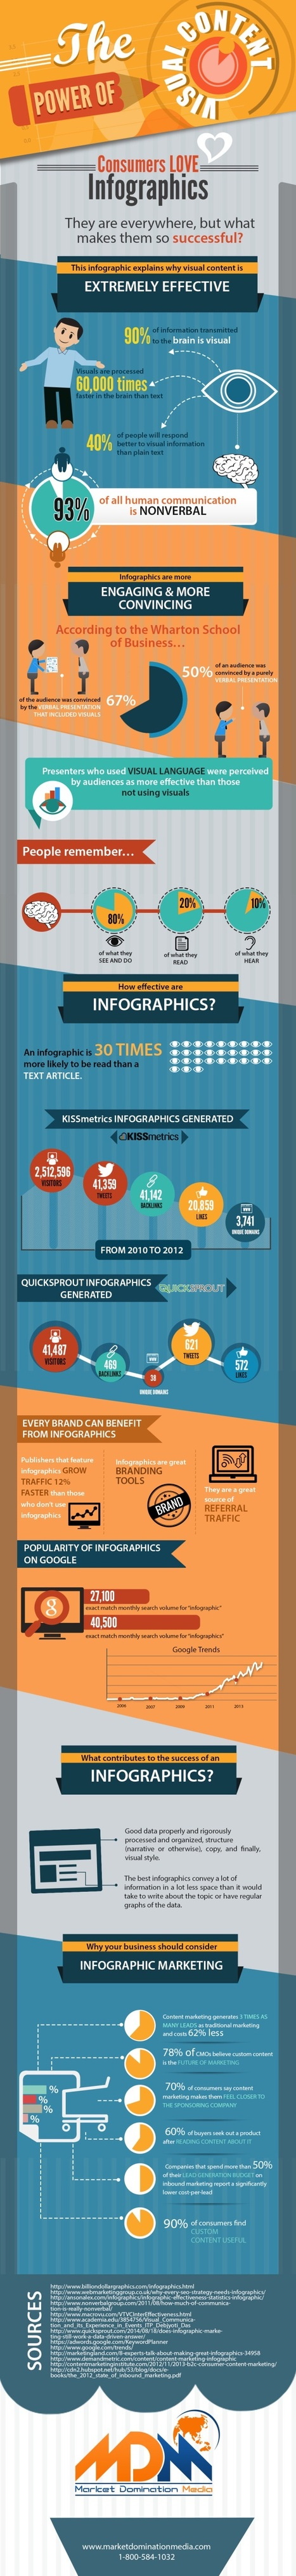 The Power of Infographic Marketing… With a Warning #infographic | MarketingHits | Scoop.it